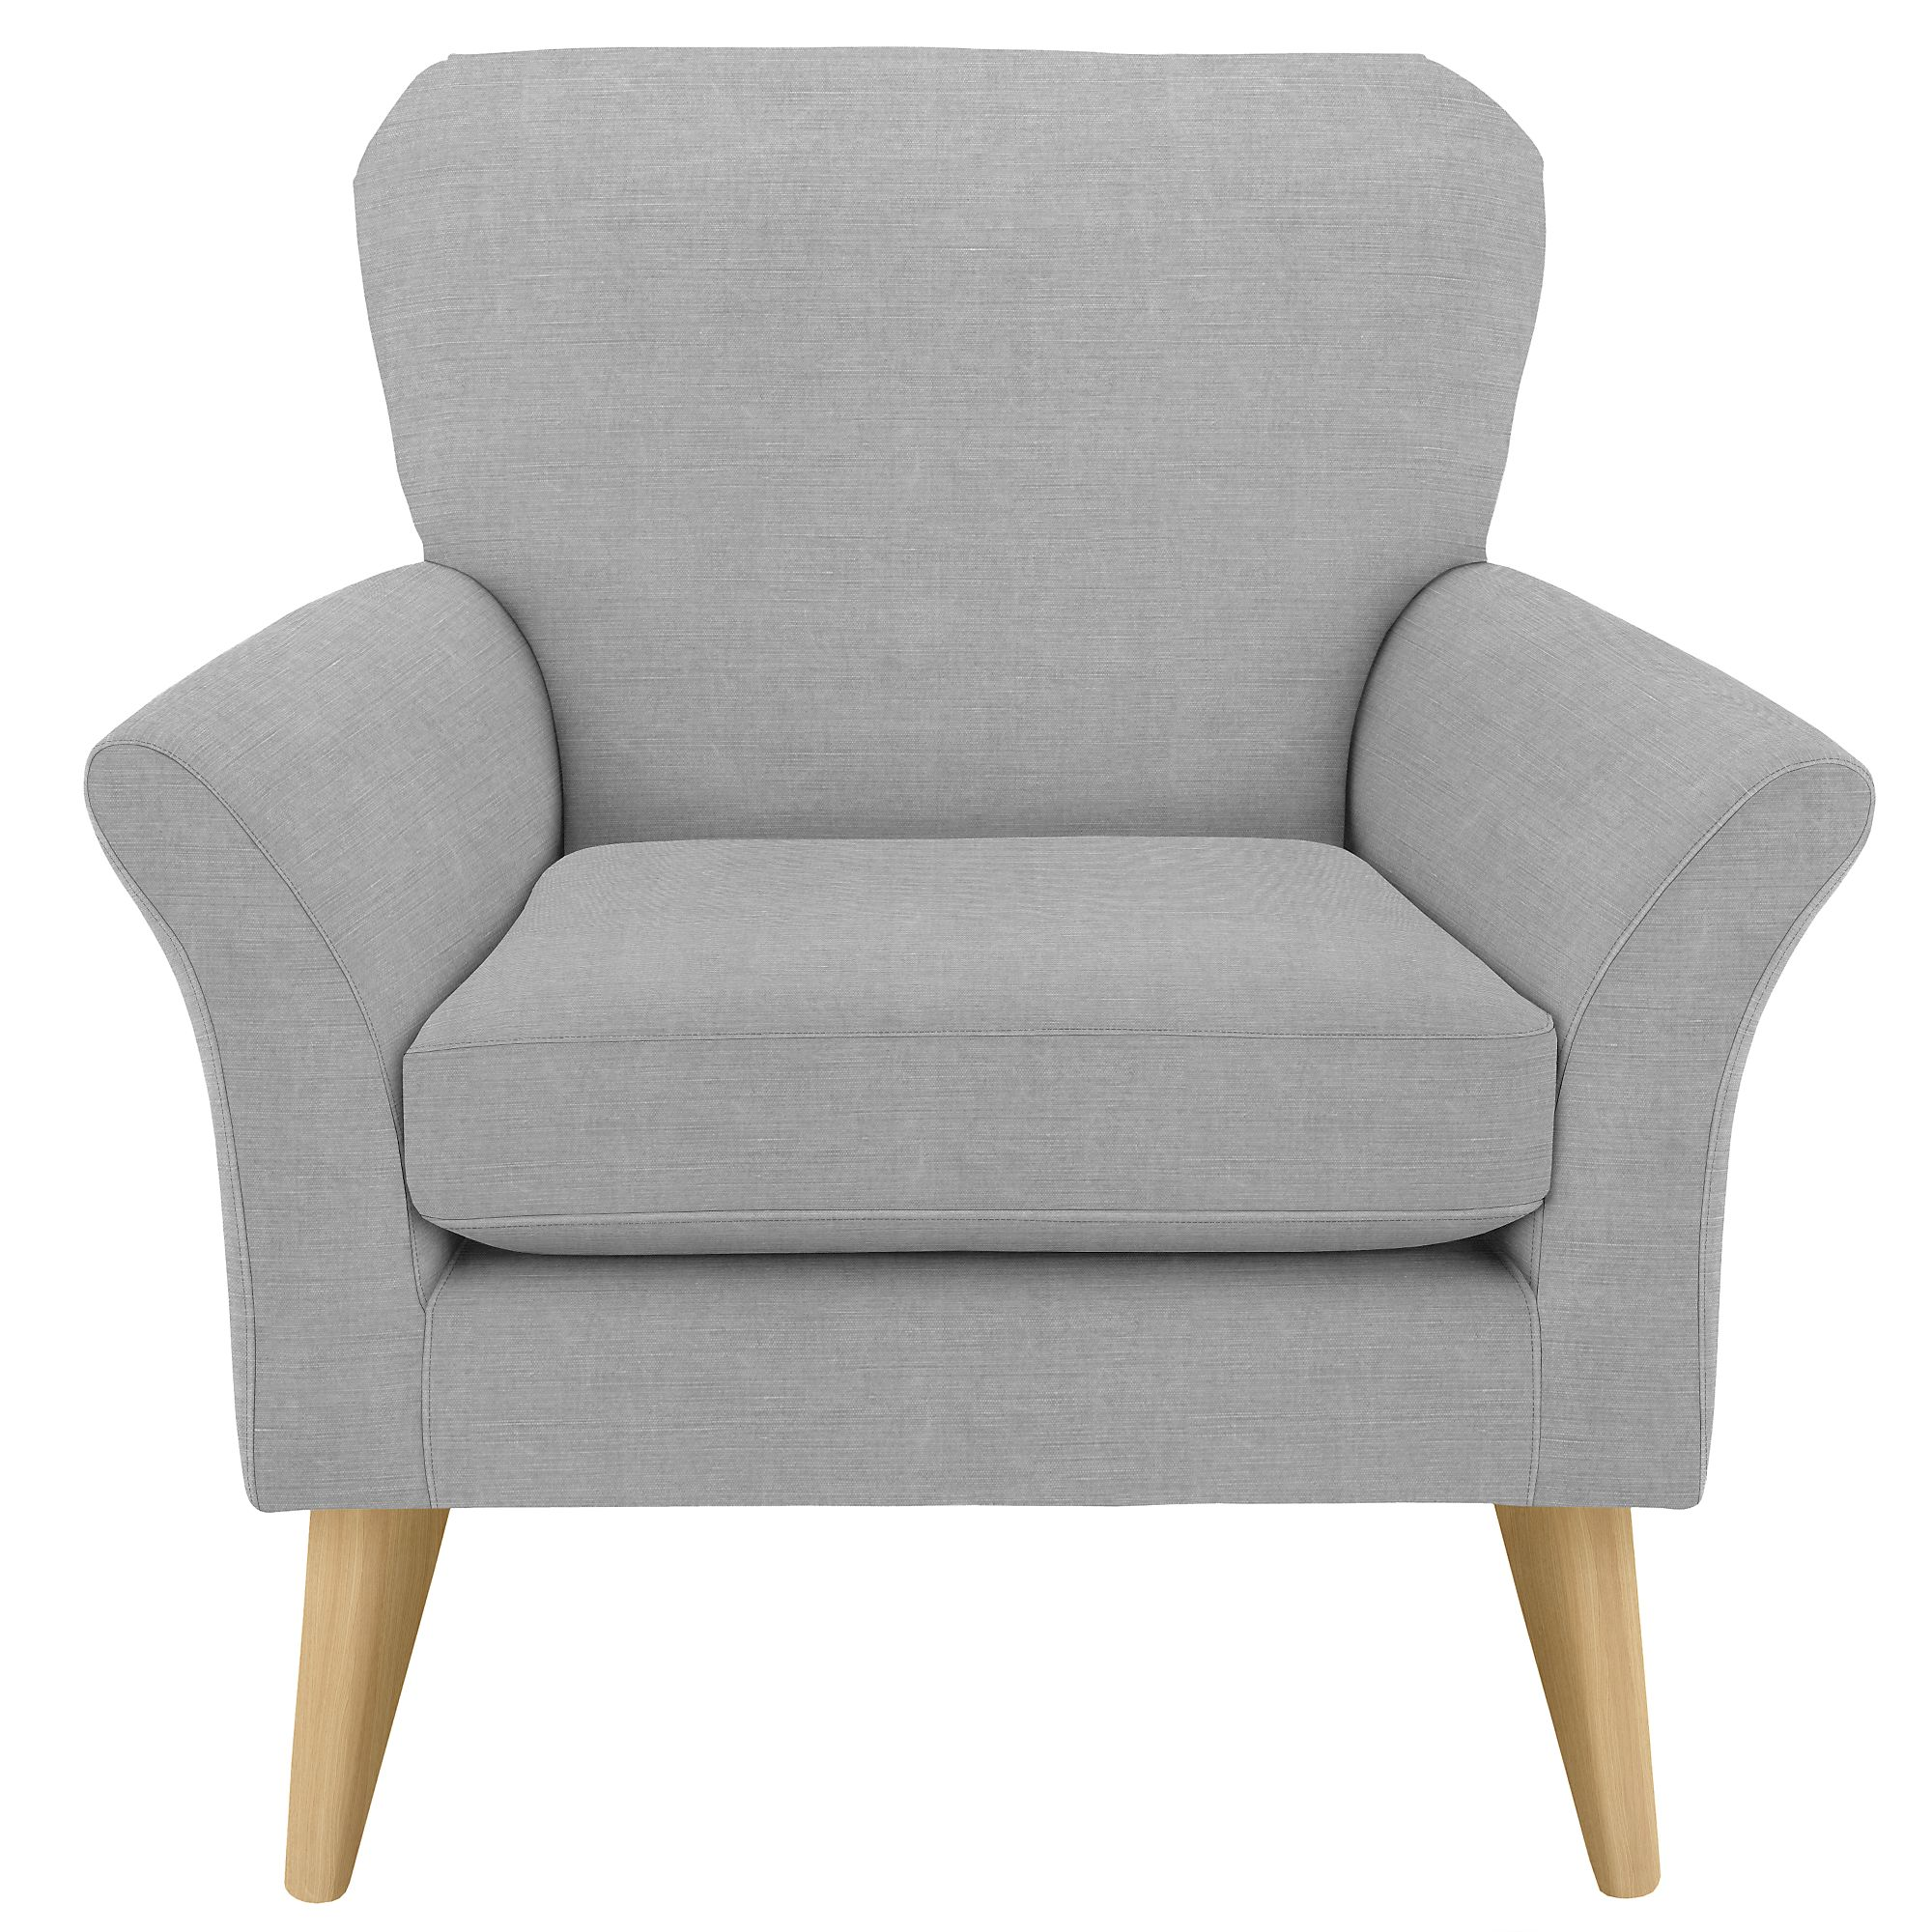 compact armchair shop for cheap living room and save online